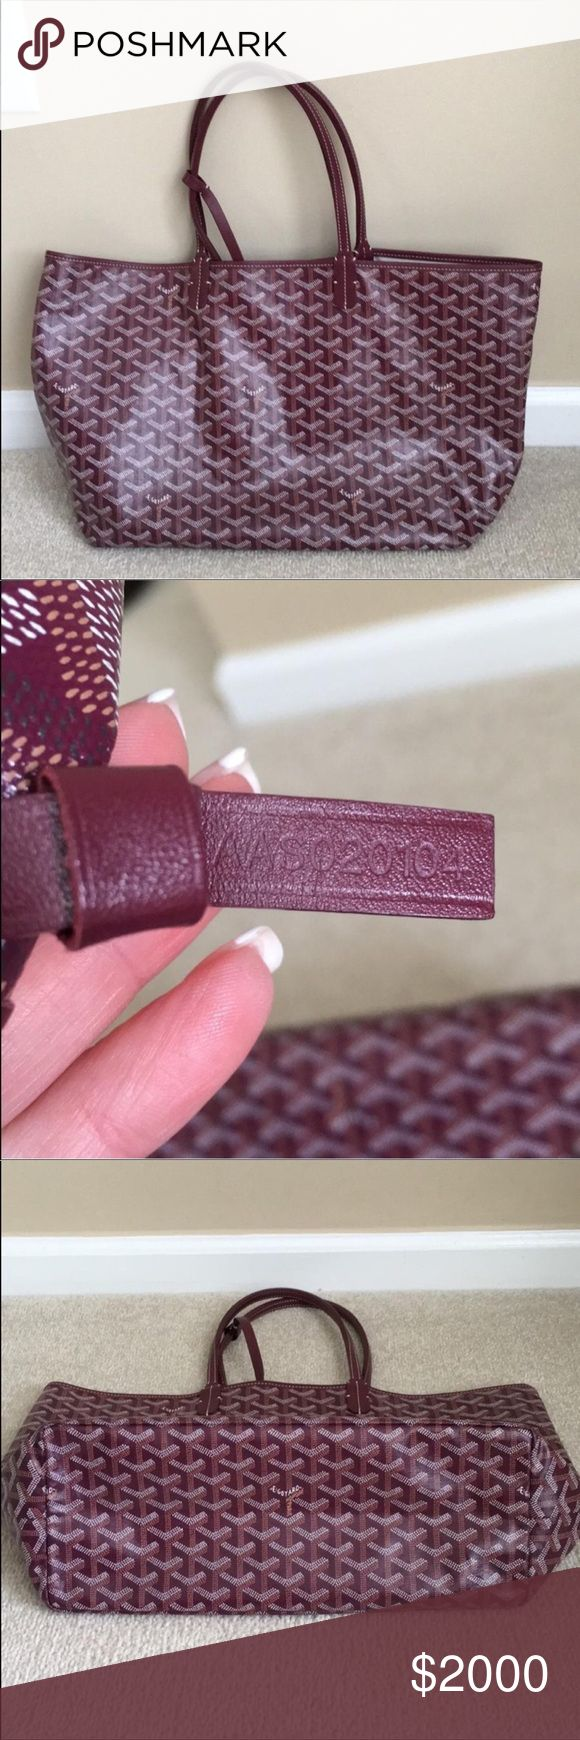 100% Authentic Burgundy Godard St. Louis PM 100% Authentic Burgundy Goyard St Louis Tote PM. With mini pouch.  Barely used - shows no signs of wear.  19 x 11 x 6 Purchased at Barneys NY. Goyard Bags Totes